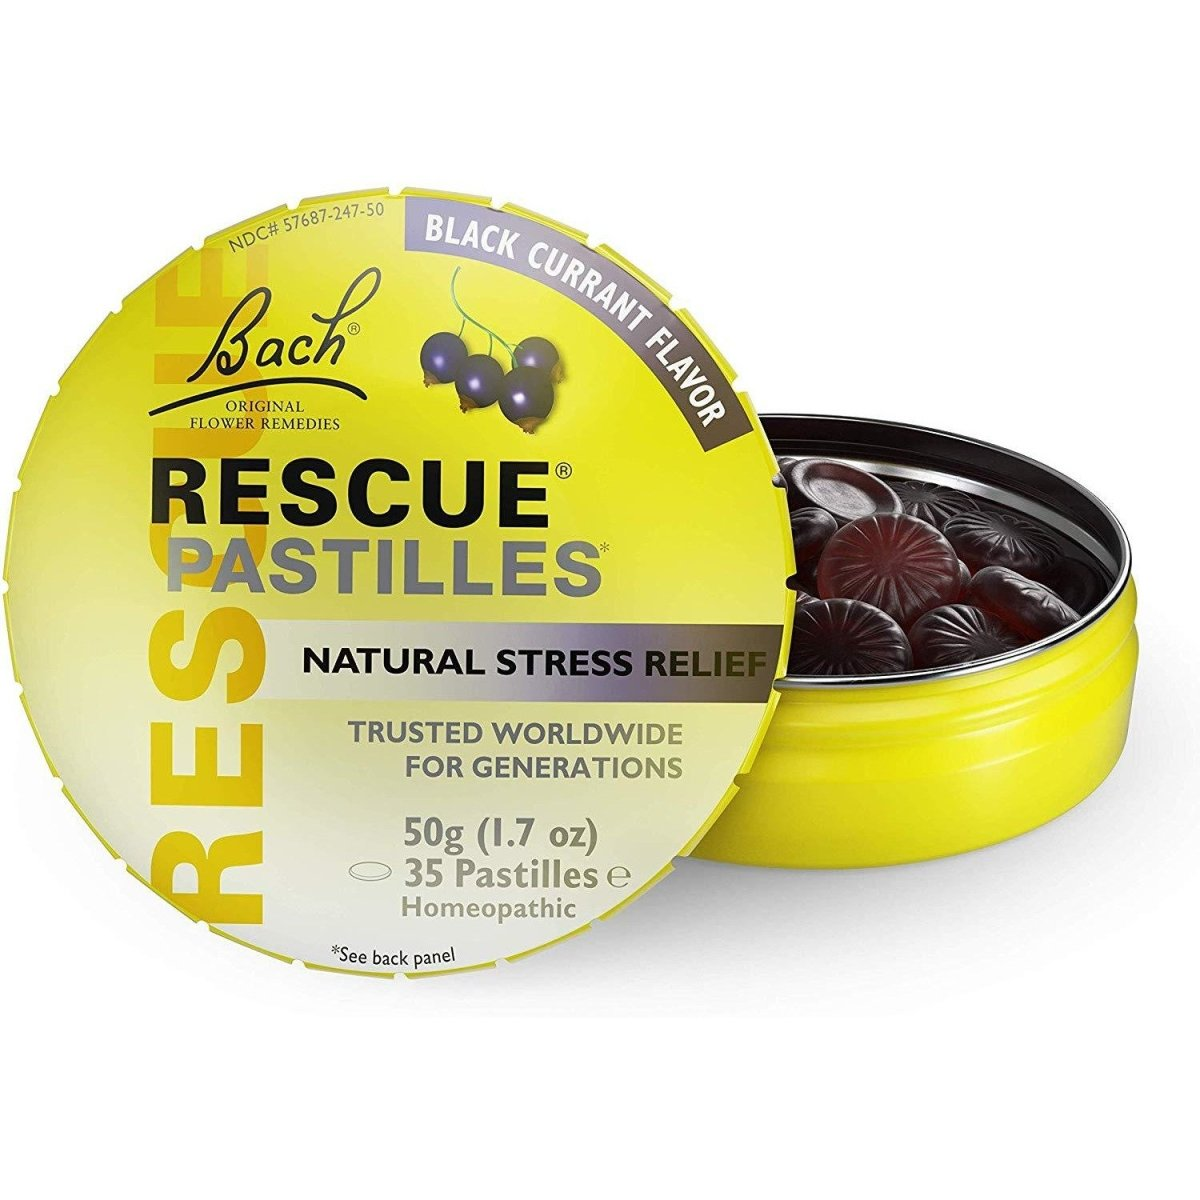 Rescue Pastilles - Natural Stress Relief - Black Currant - 12 Units Display